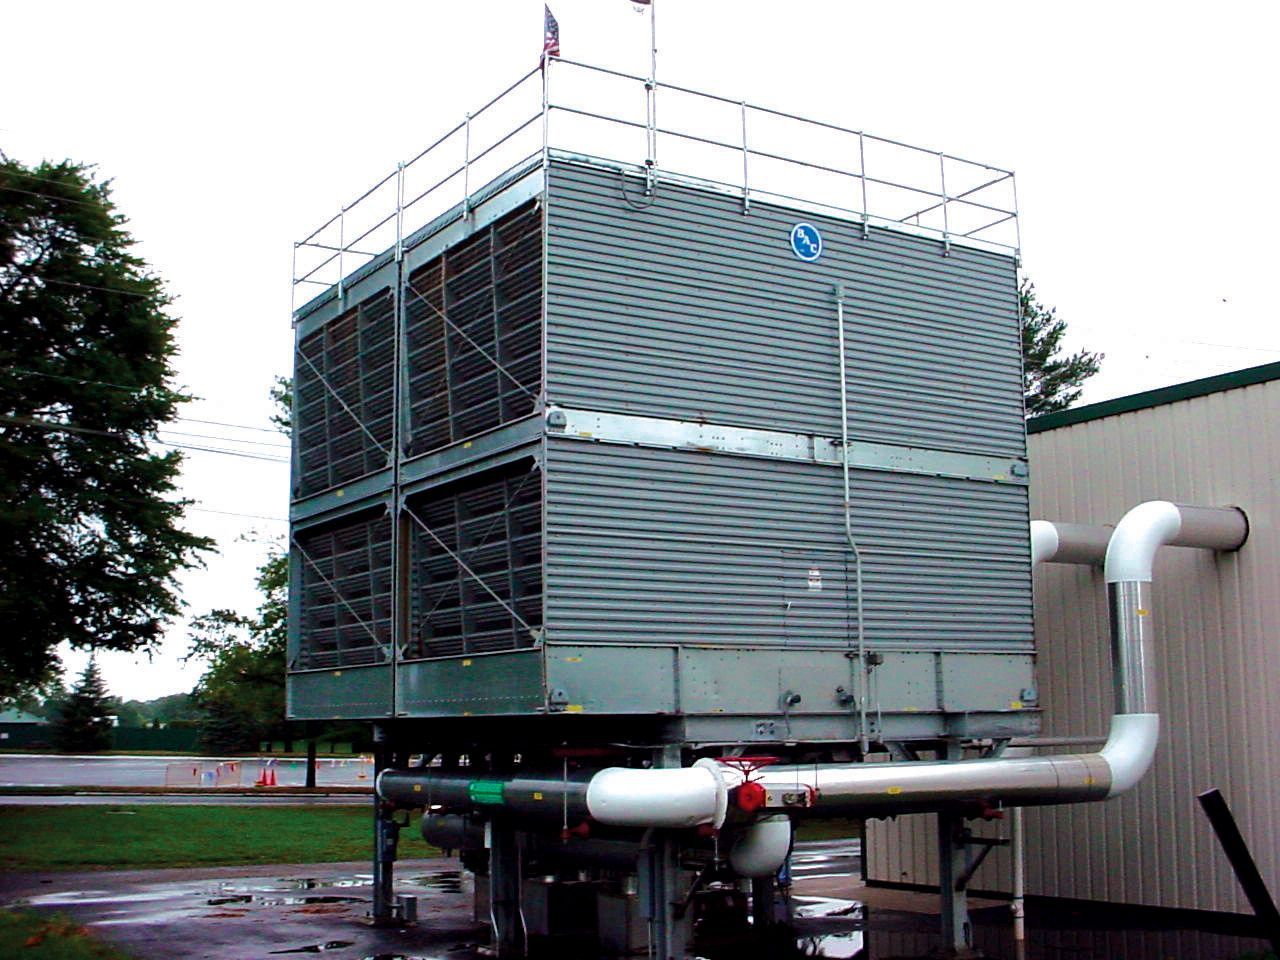 Cooling Tower Cooling Tower Wastewater Treatment Systems Water